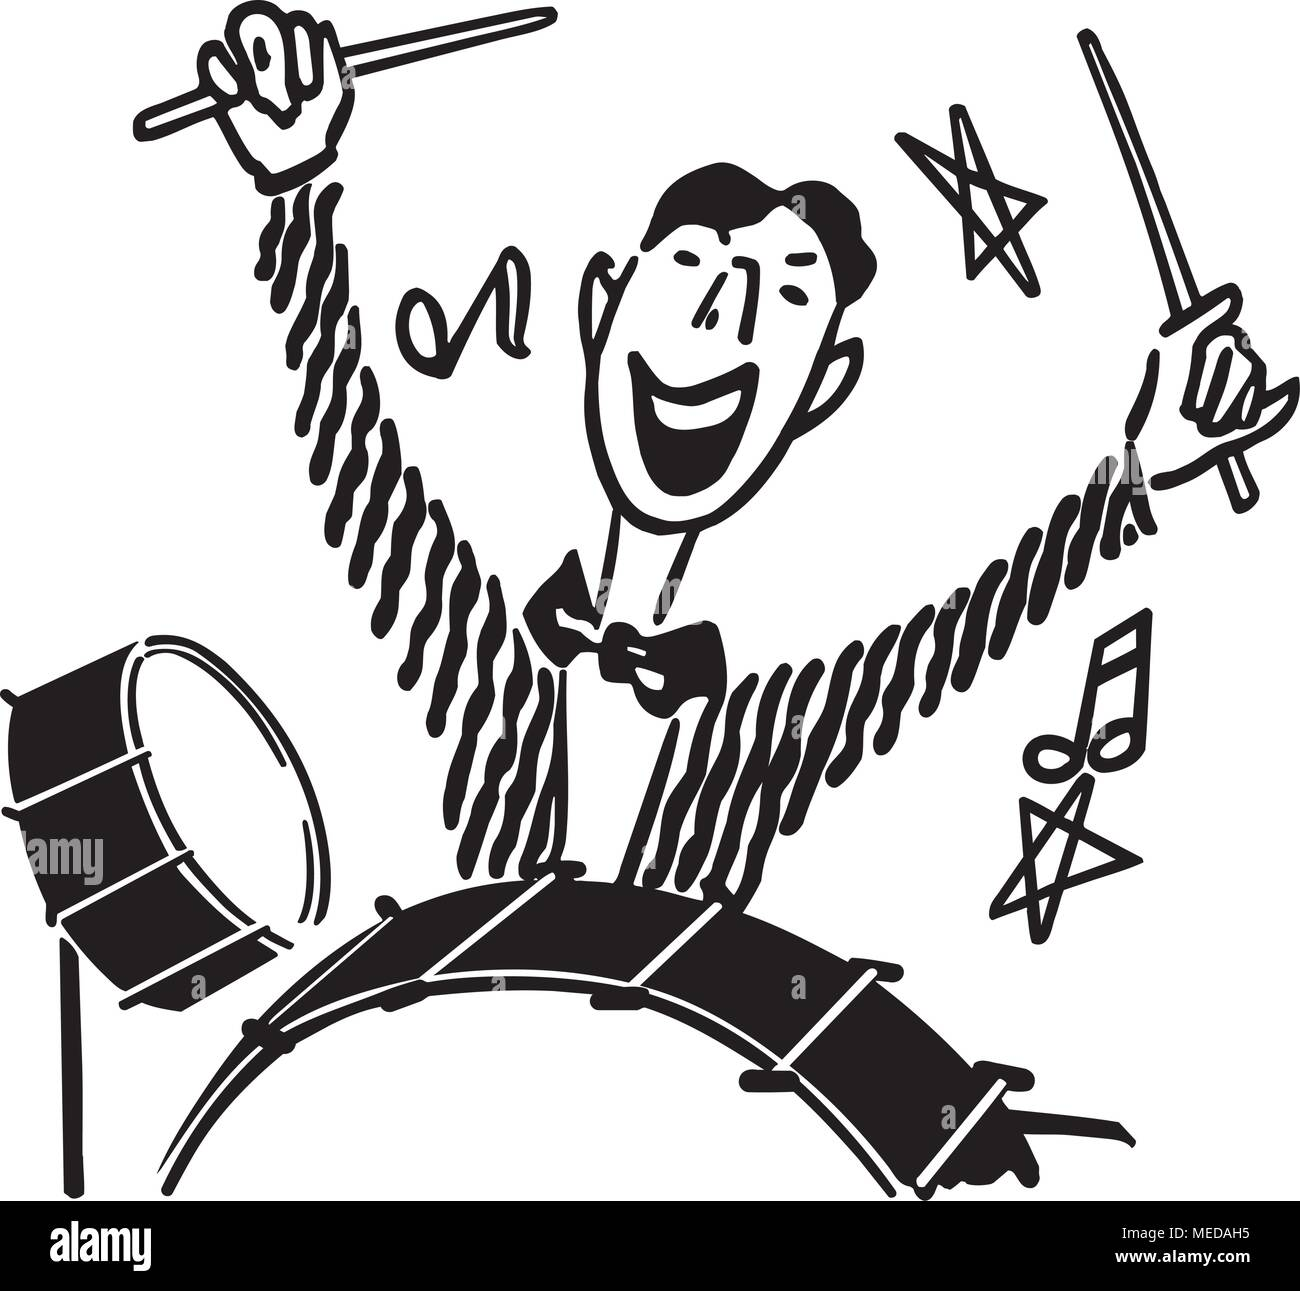 Drummer - Retro Clipart Illustration - Stock Image